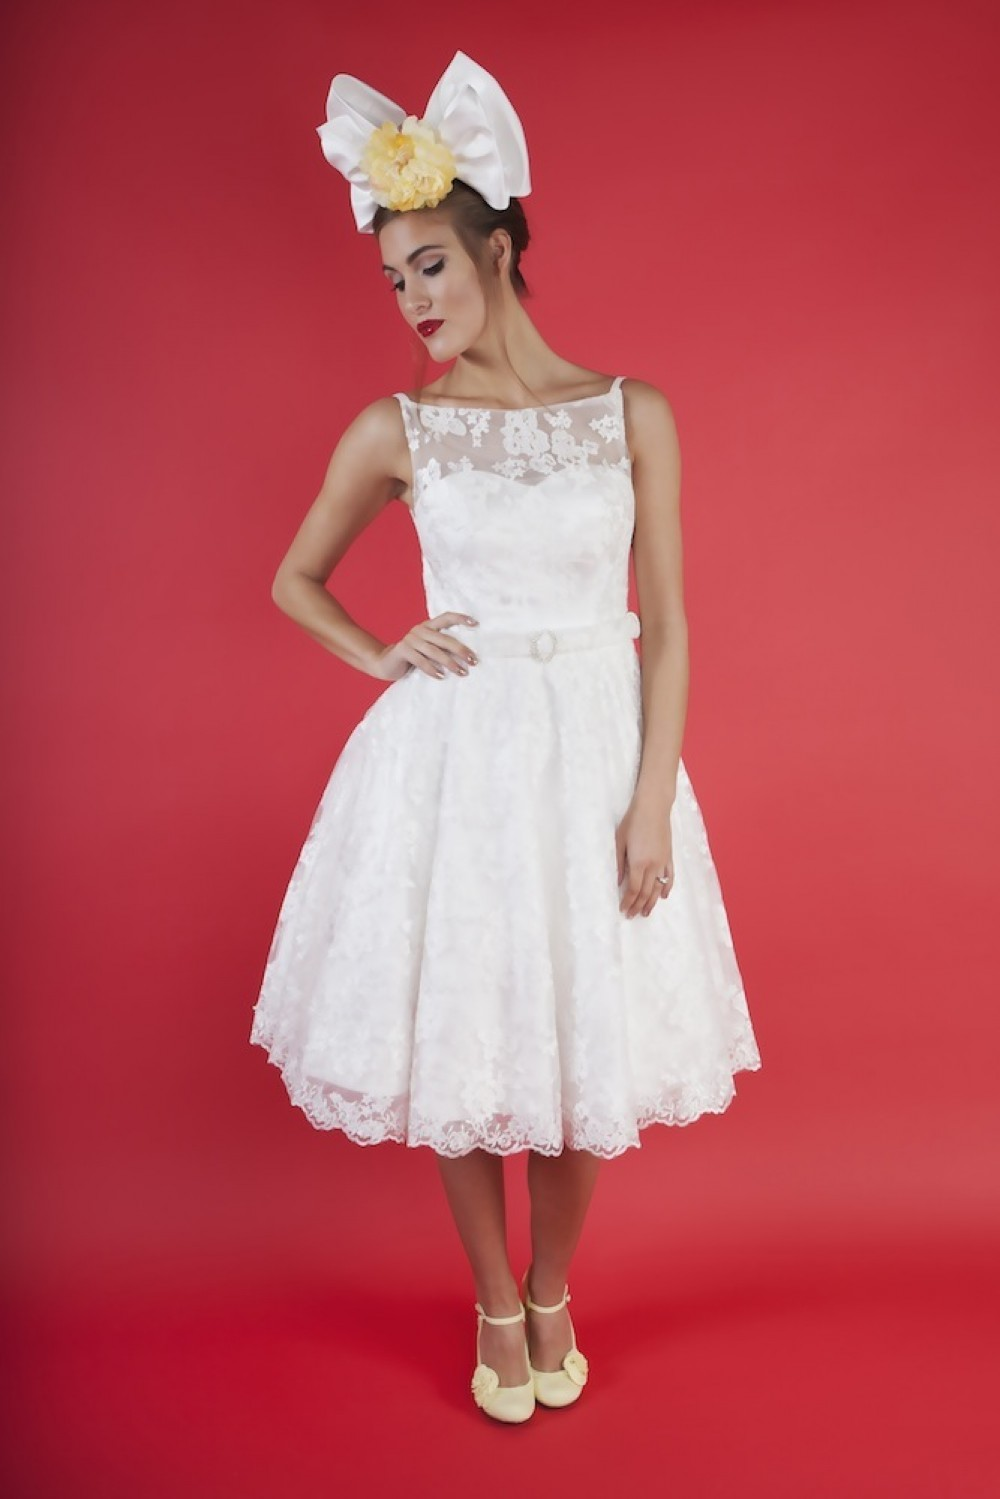 Online Wedding Dresses Under £500 - Buy Cheap 1950s Vintage Wedding ...